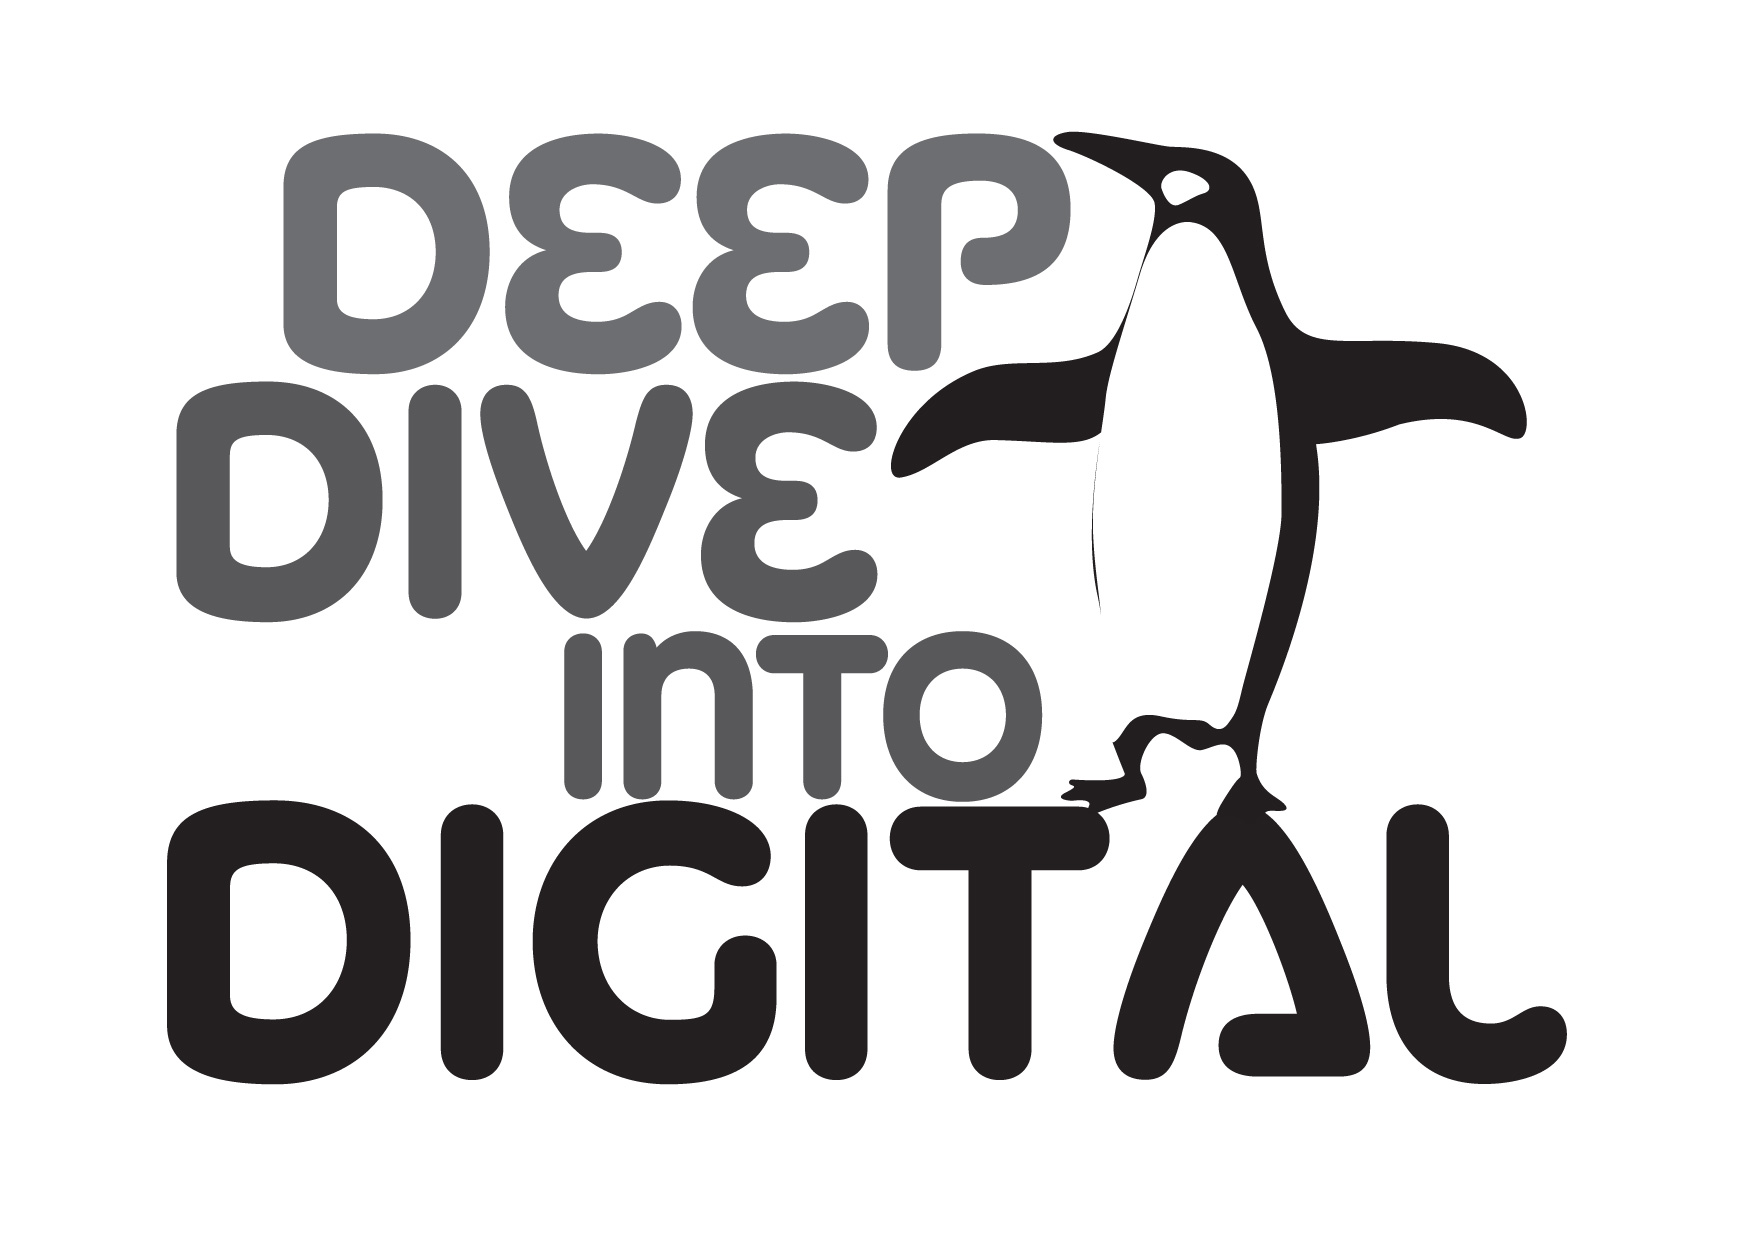 Penguin looks at taking a Deep Dive into Digital